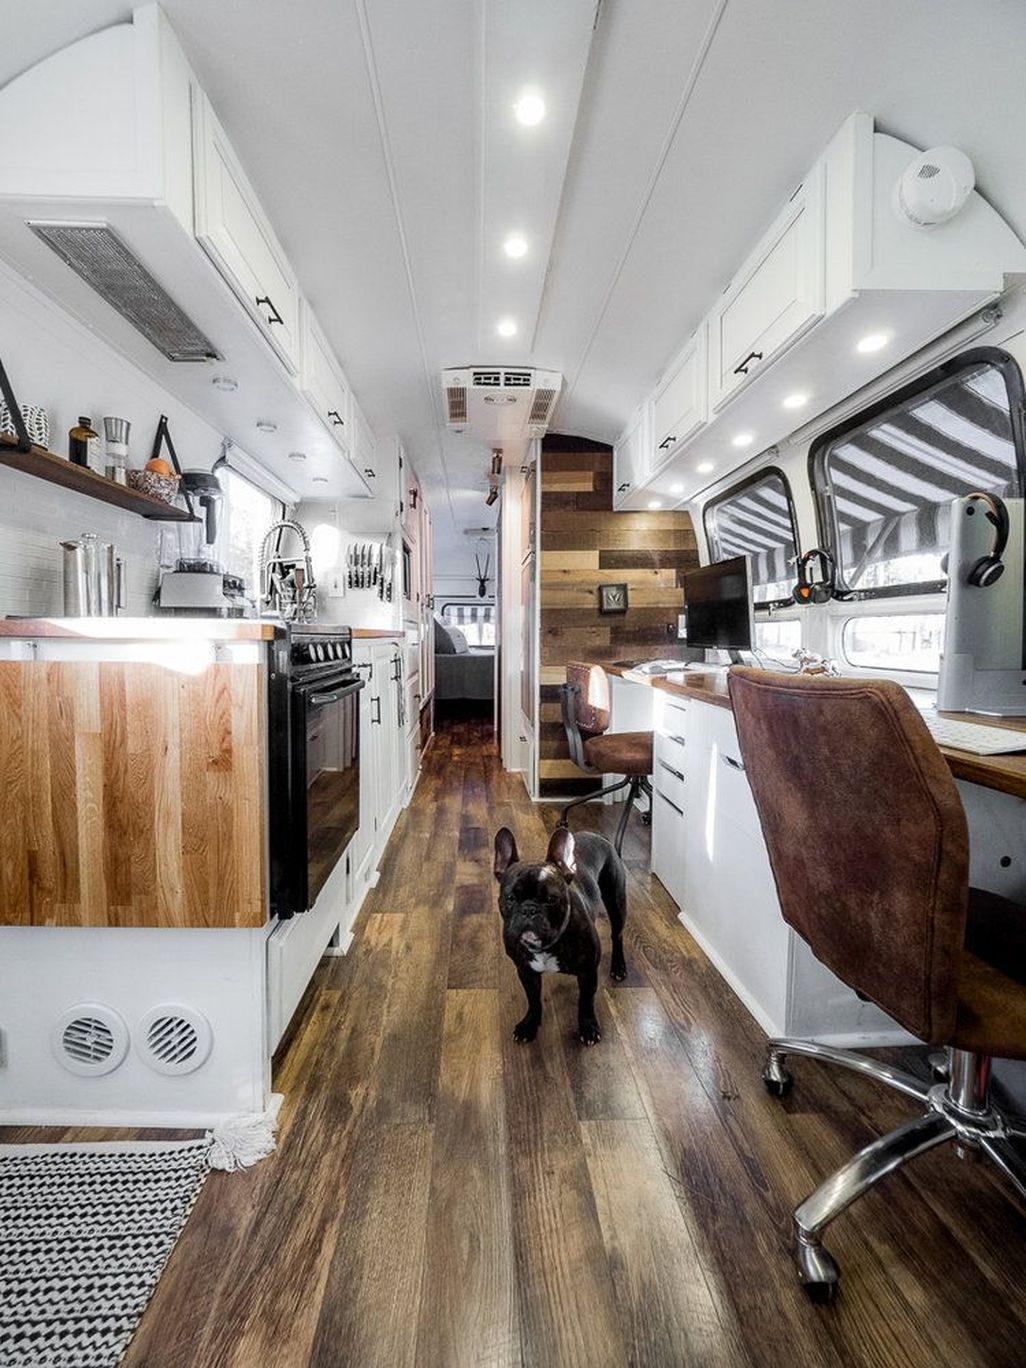 Pin By Trend4homy On Trending Decoration In 2019: Airstream Interior, Airstream Trailers, Airstream